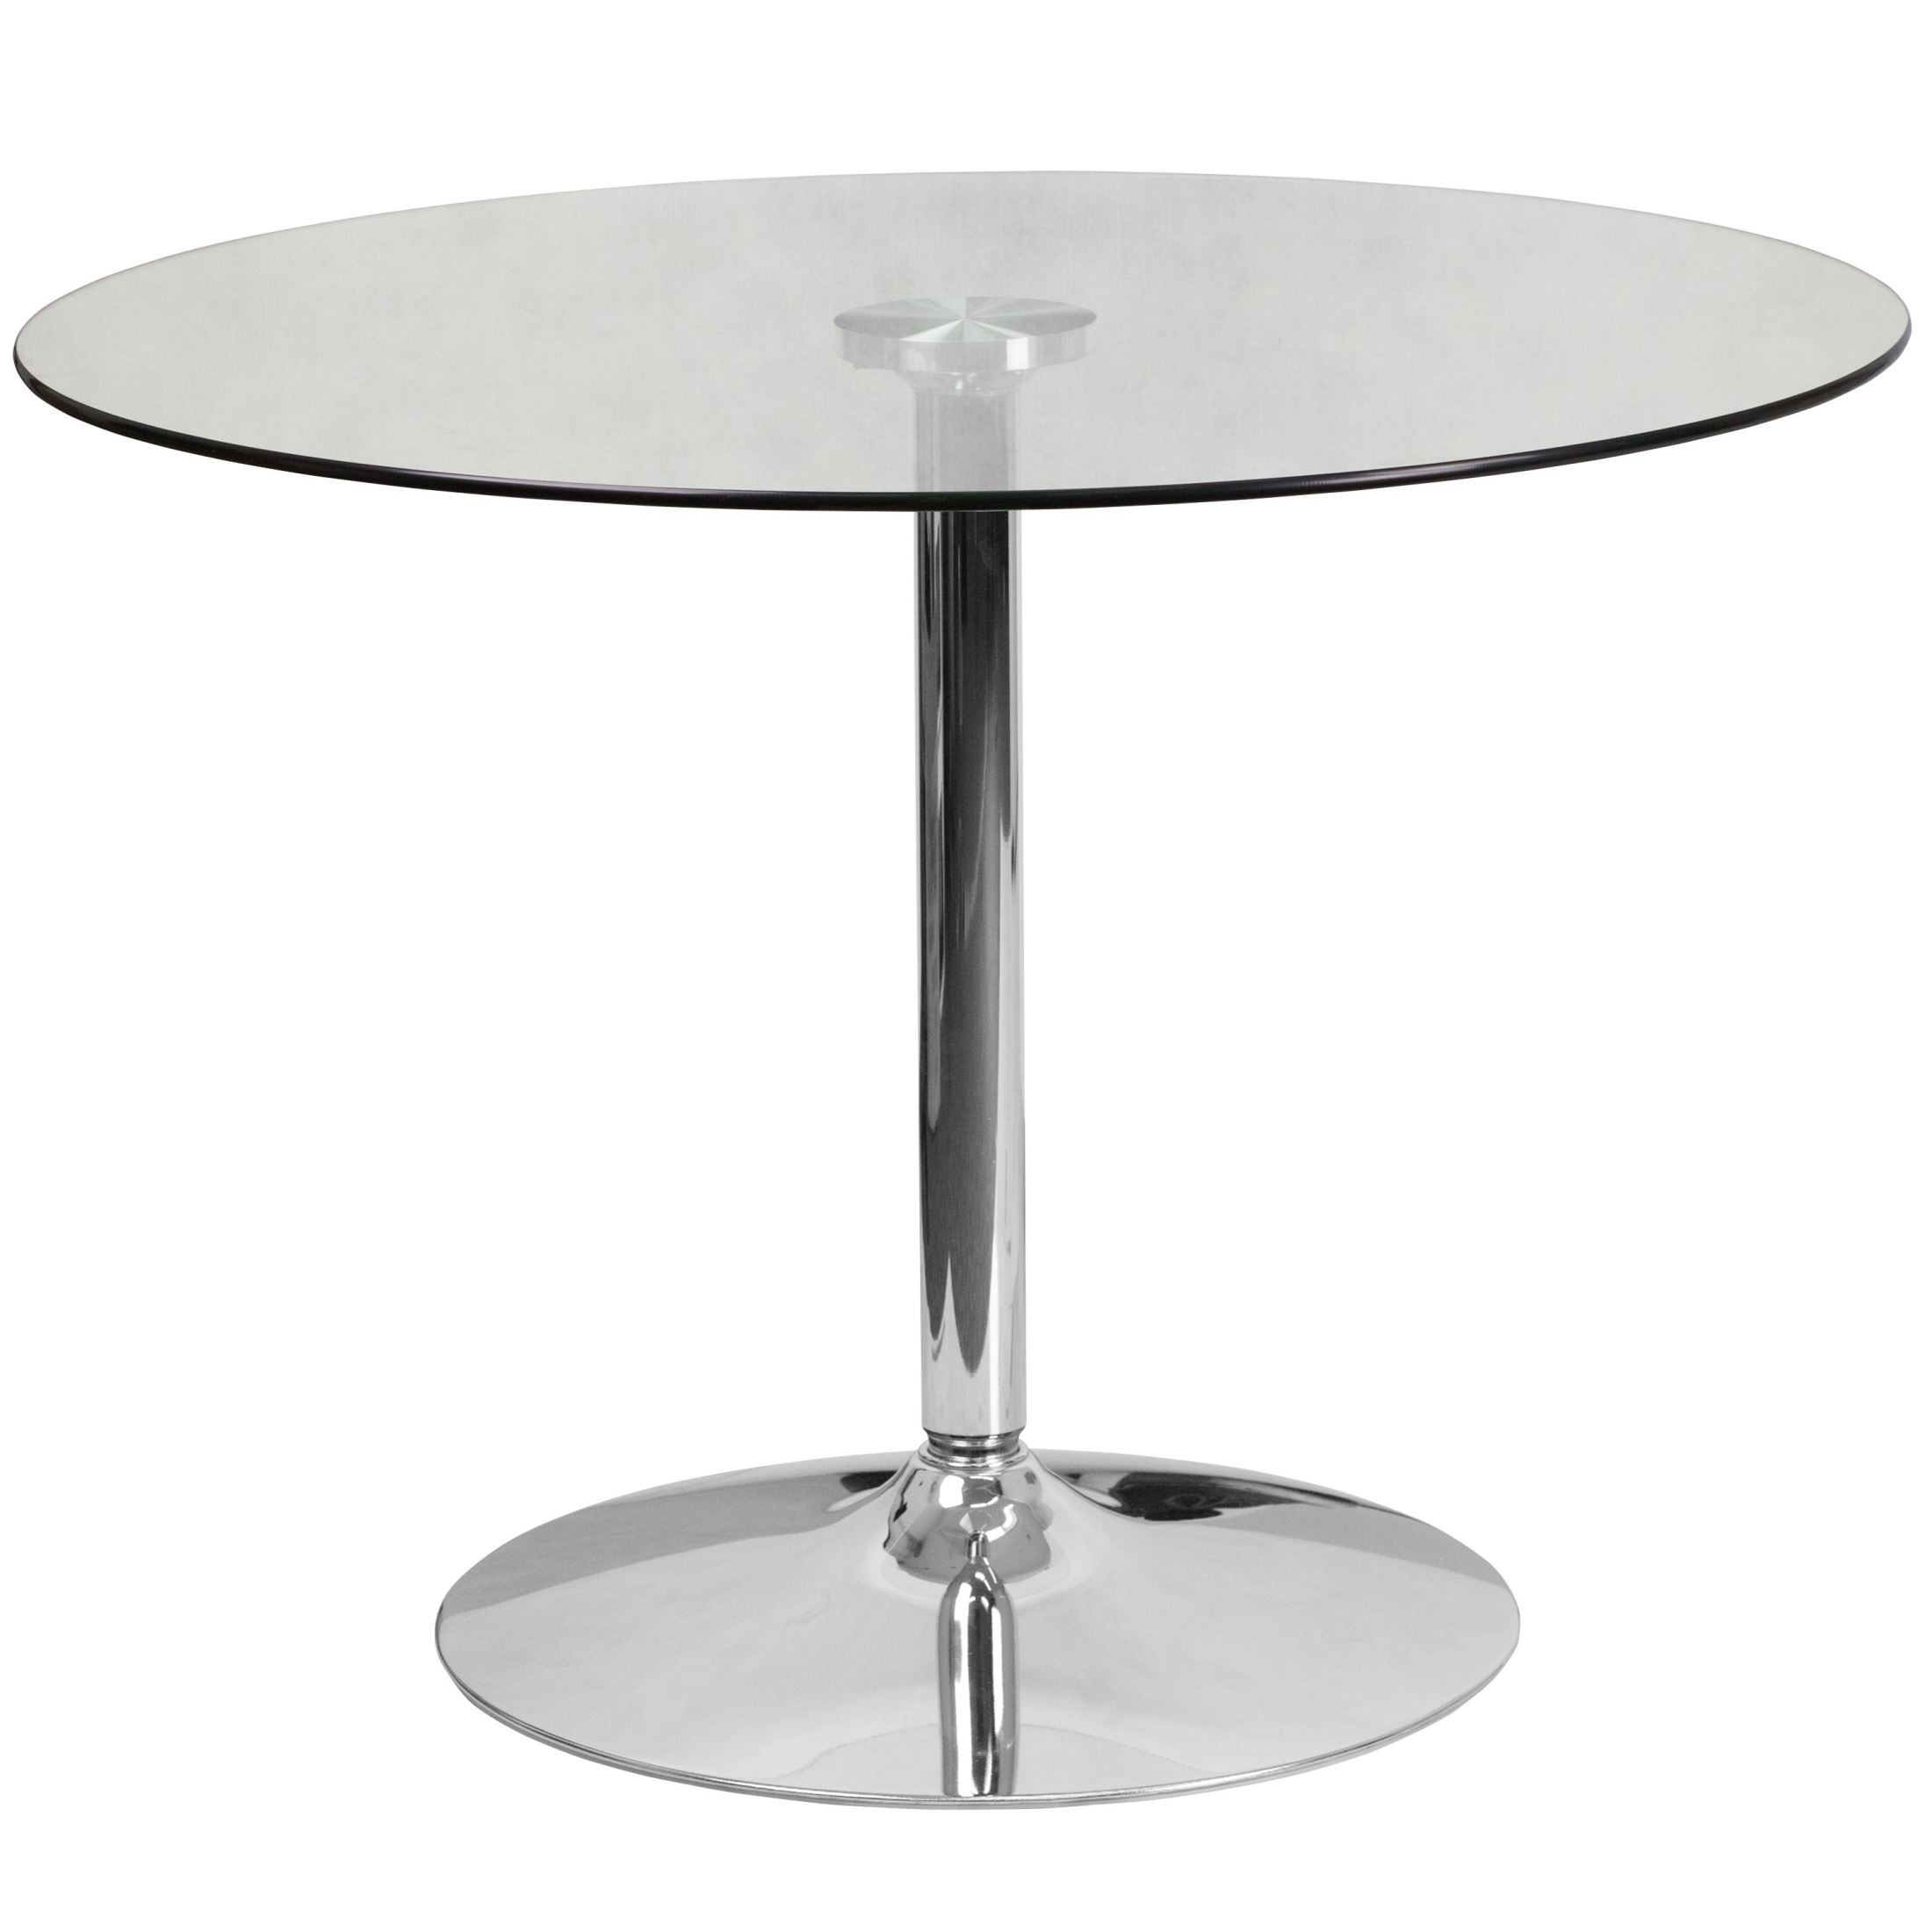 "25 Inch Round Glass Coffee Table: 39.25"" Round Glass Table With Chrome Base From Renegade"